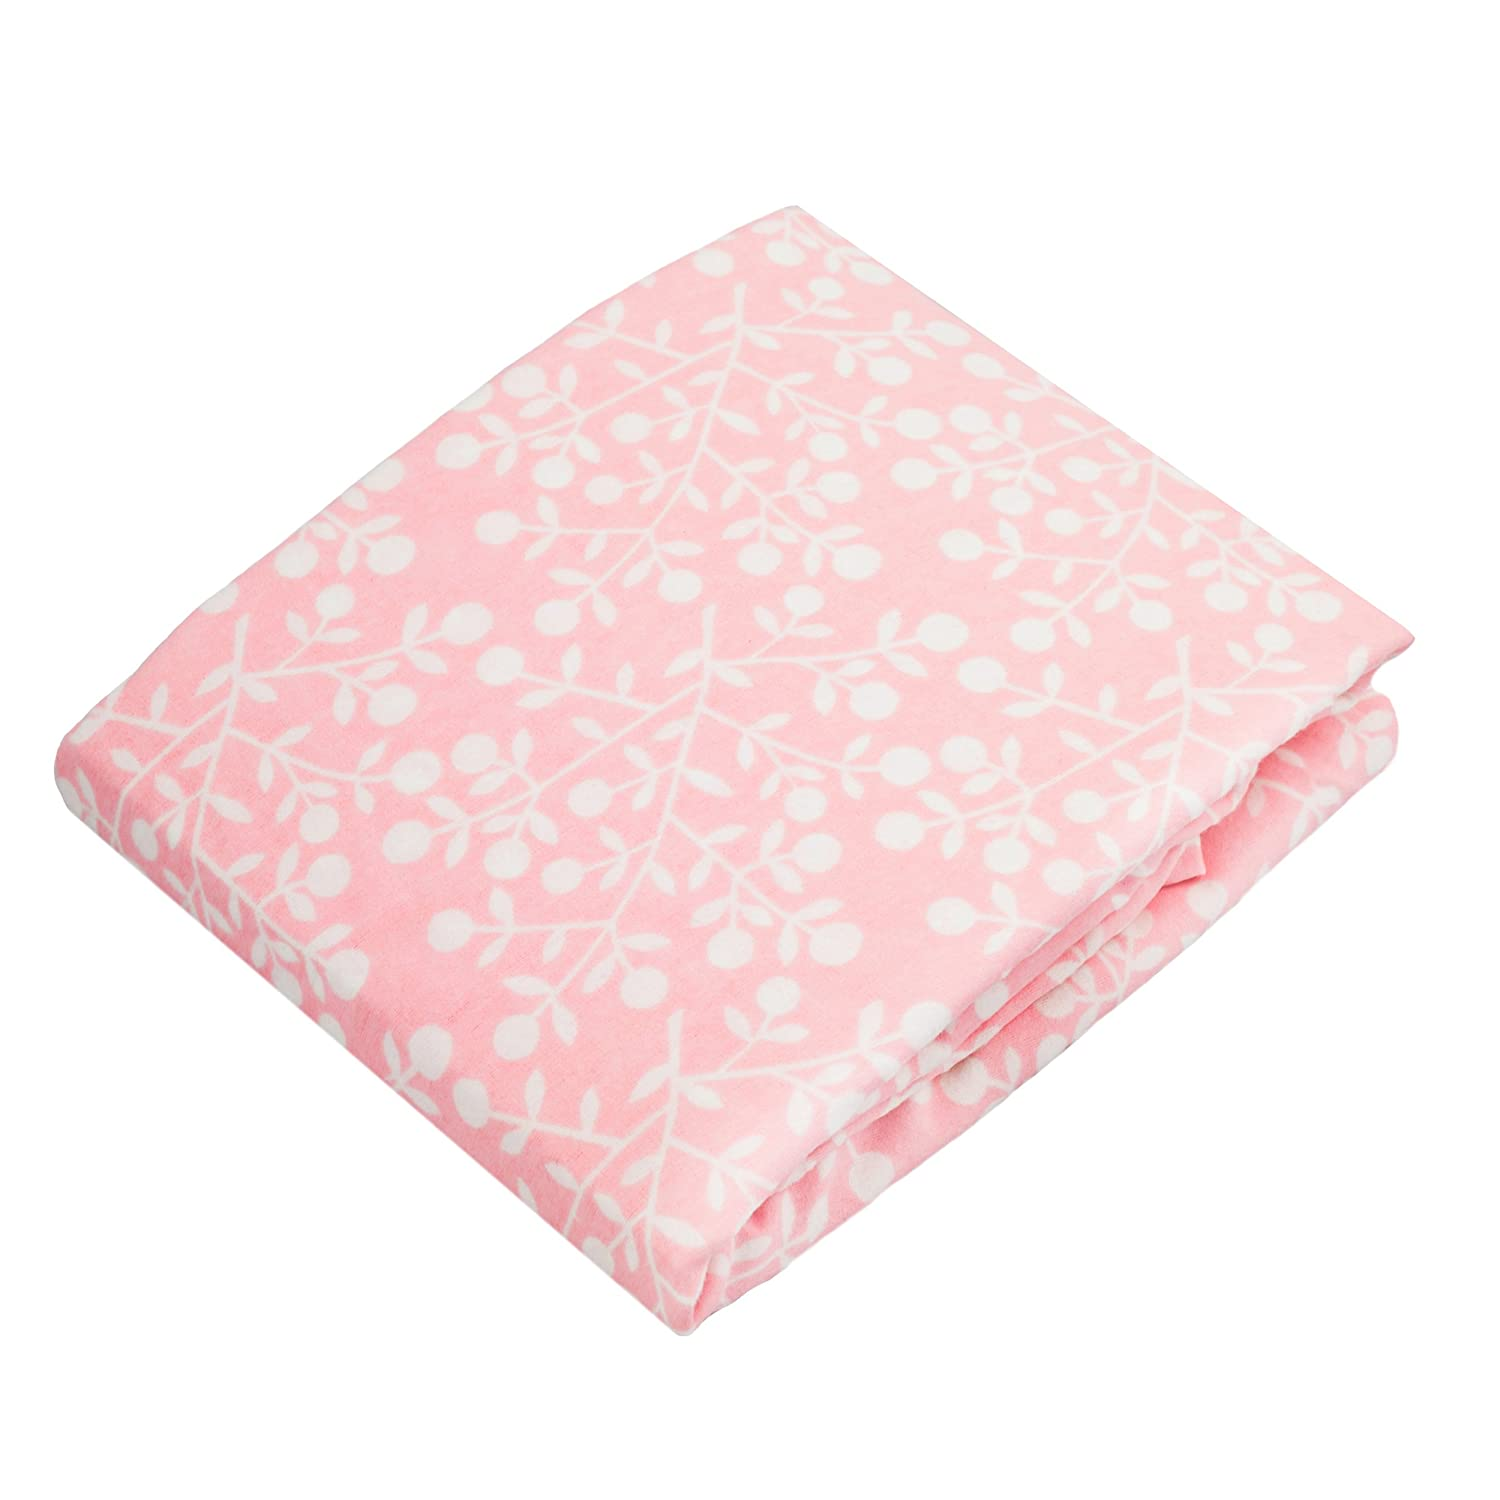 Kushies Changing Pad Cover for 1 pad, 100% breathable cotton, Made in Canada, Pink Berries Kushies Baby S340-524